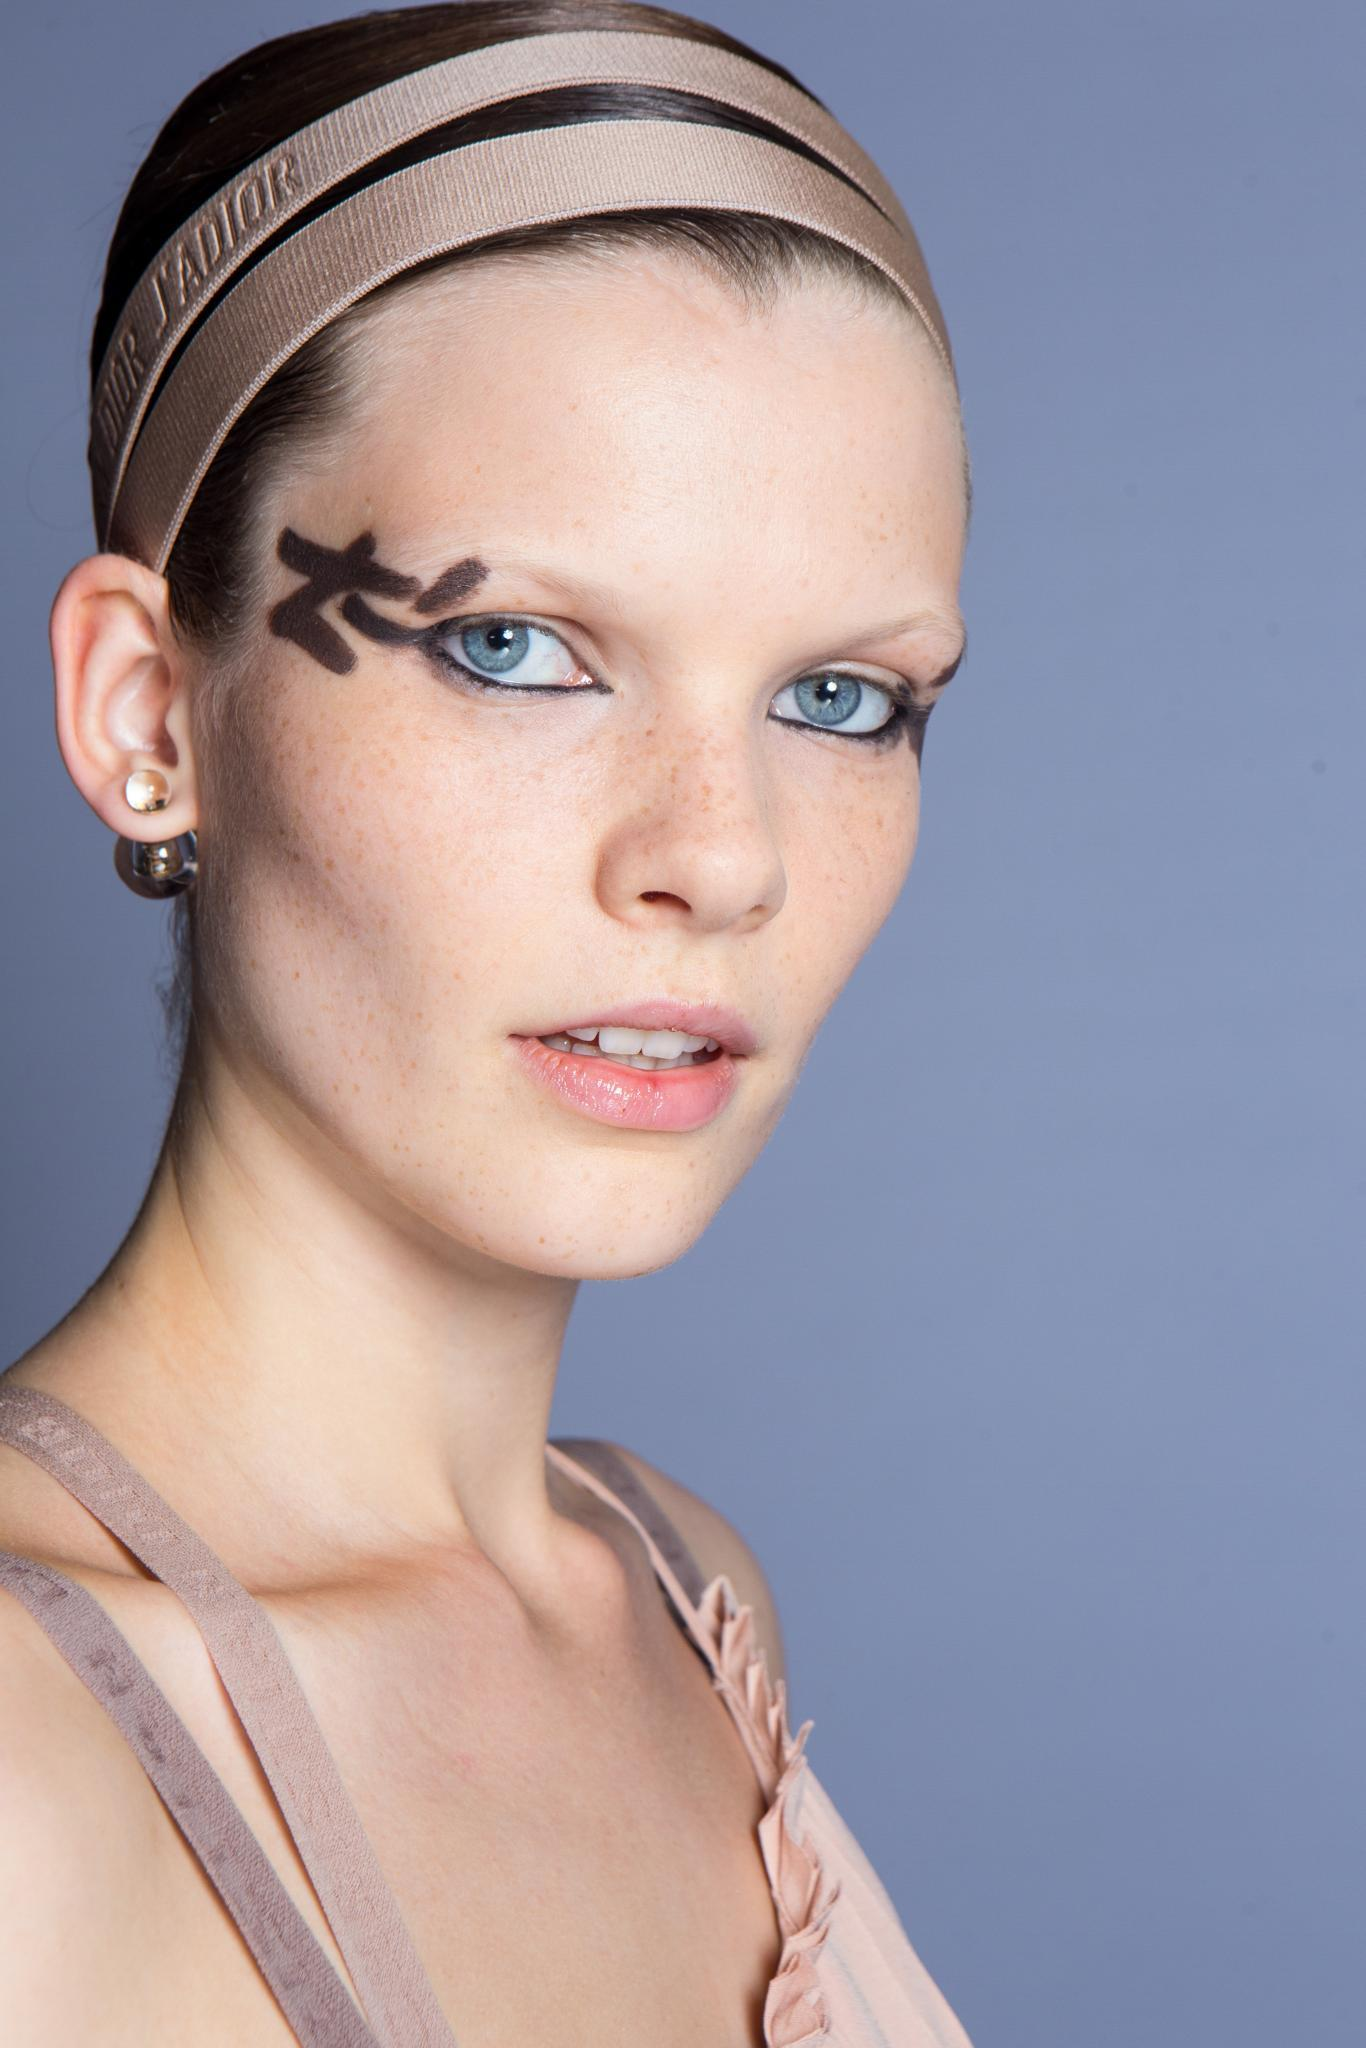 Headband and bandana hairstyles: Model at Dior SS19 with hair in a sleek bun updo wearing a double pink headband and bold eye makeup.